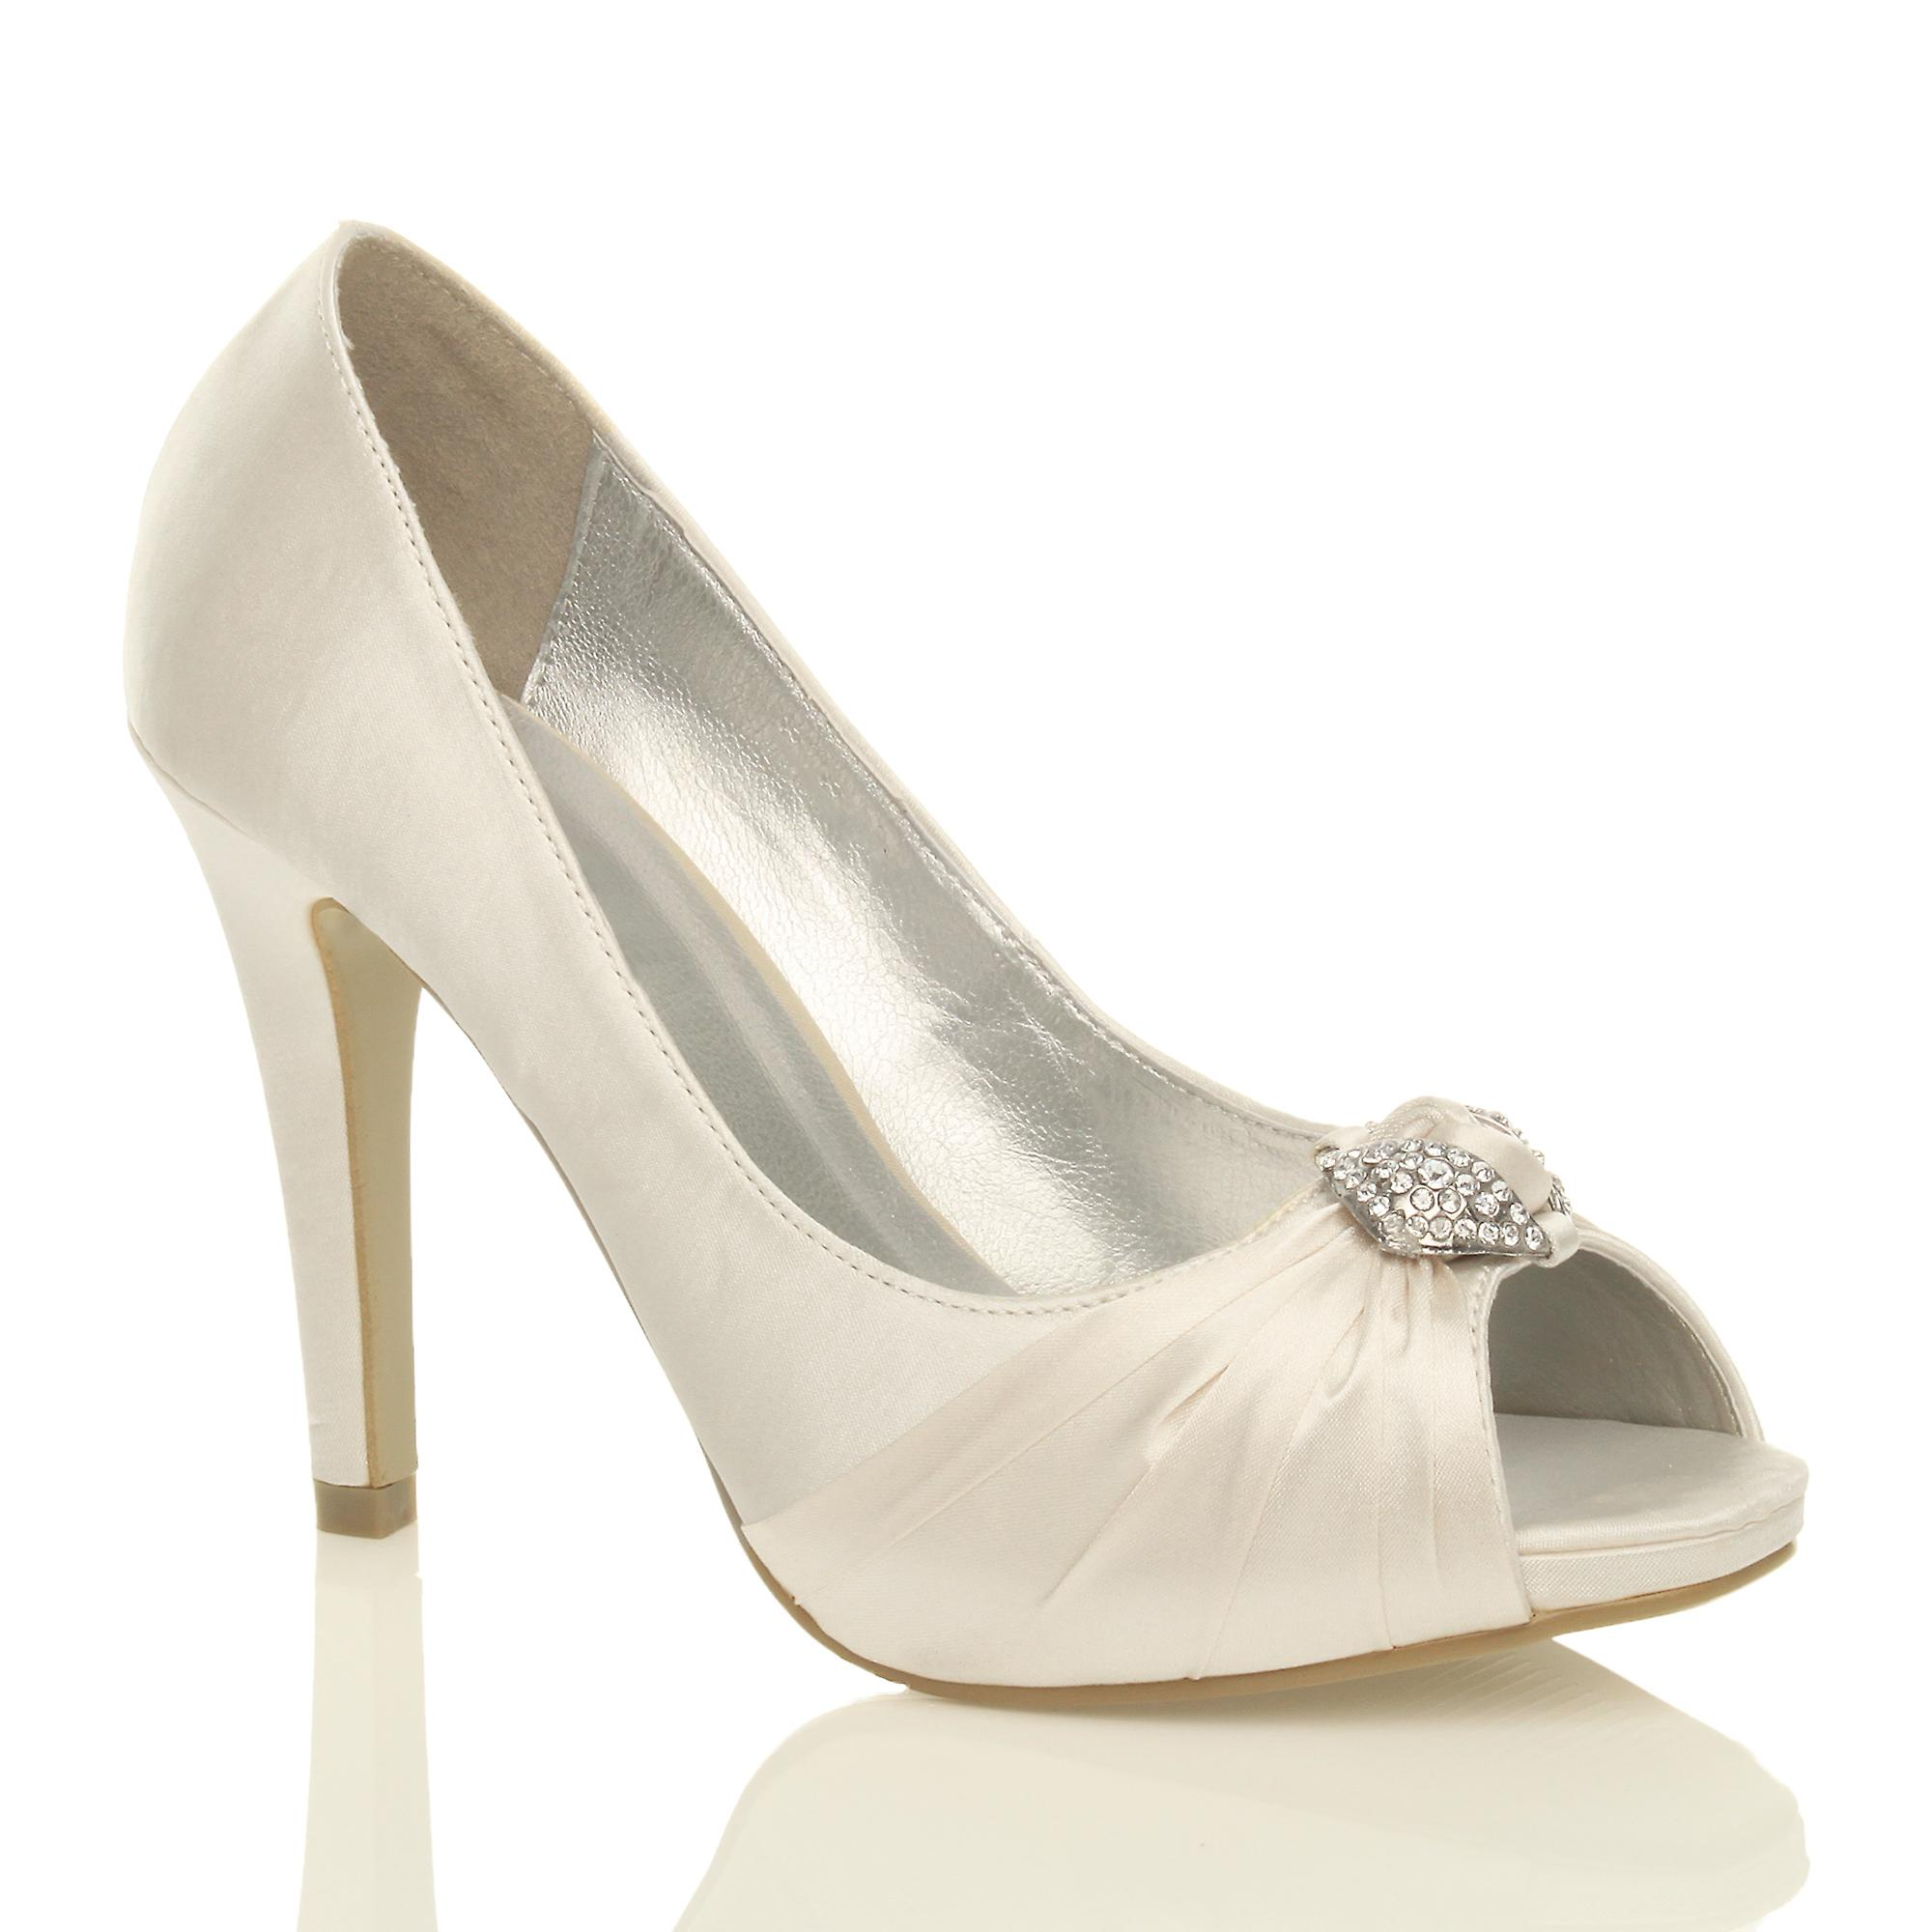 Ajvani womens high heel diamante ruched bridal toe wedding prom evening peep toe bridal court shoes pumps:King of the Kings:Man's/Woman's d941a2